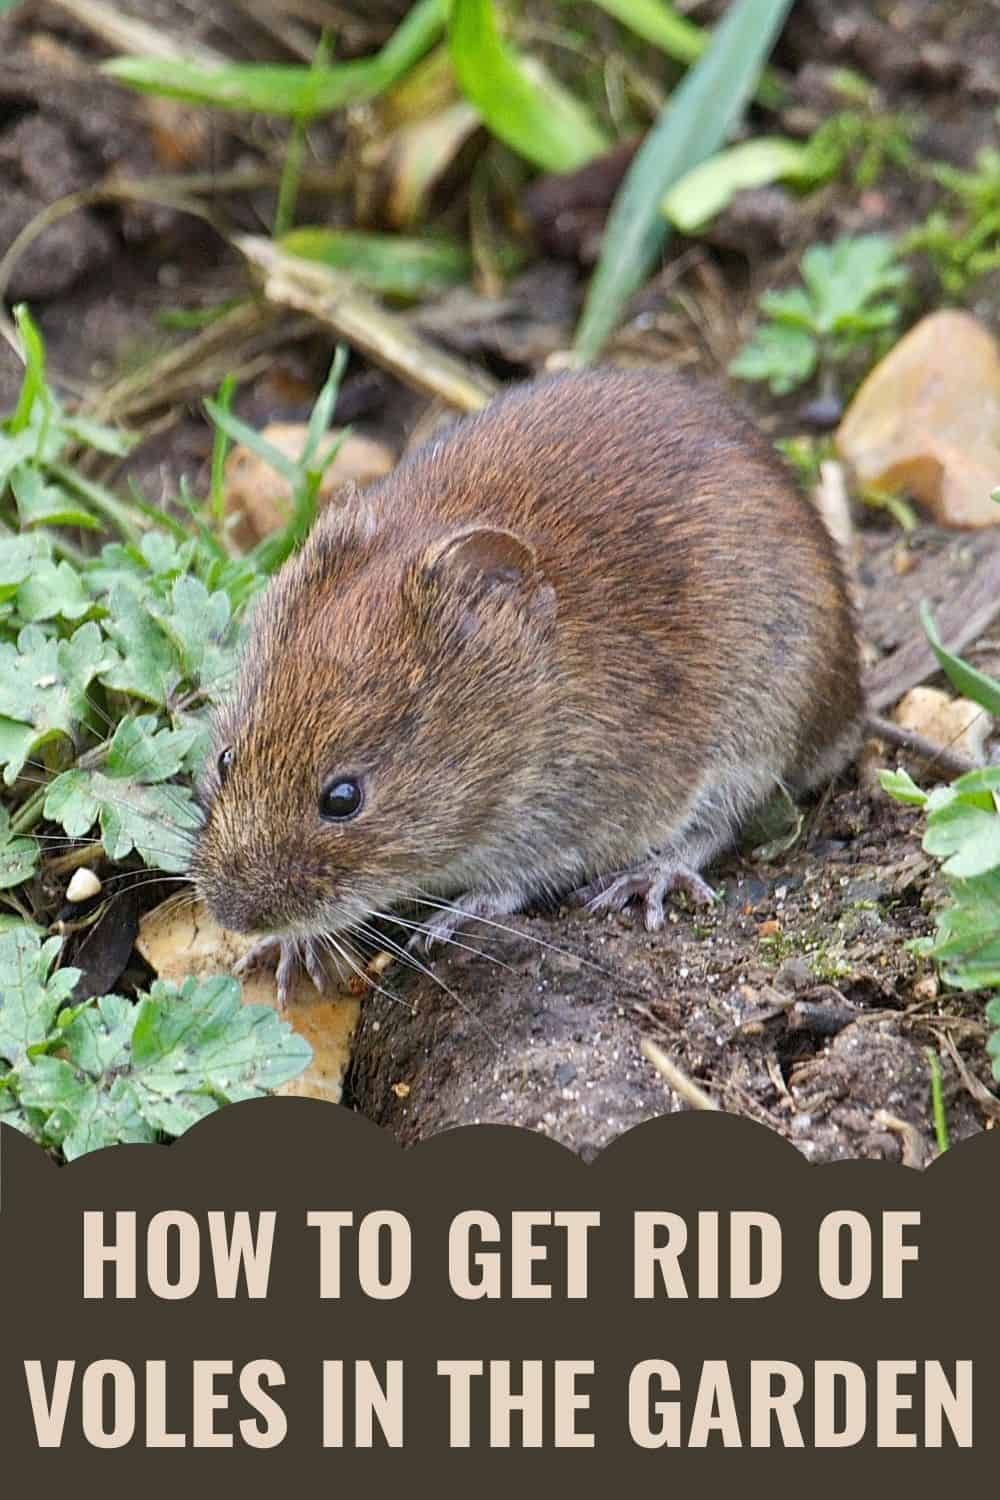 How to get rid of voles in the garden